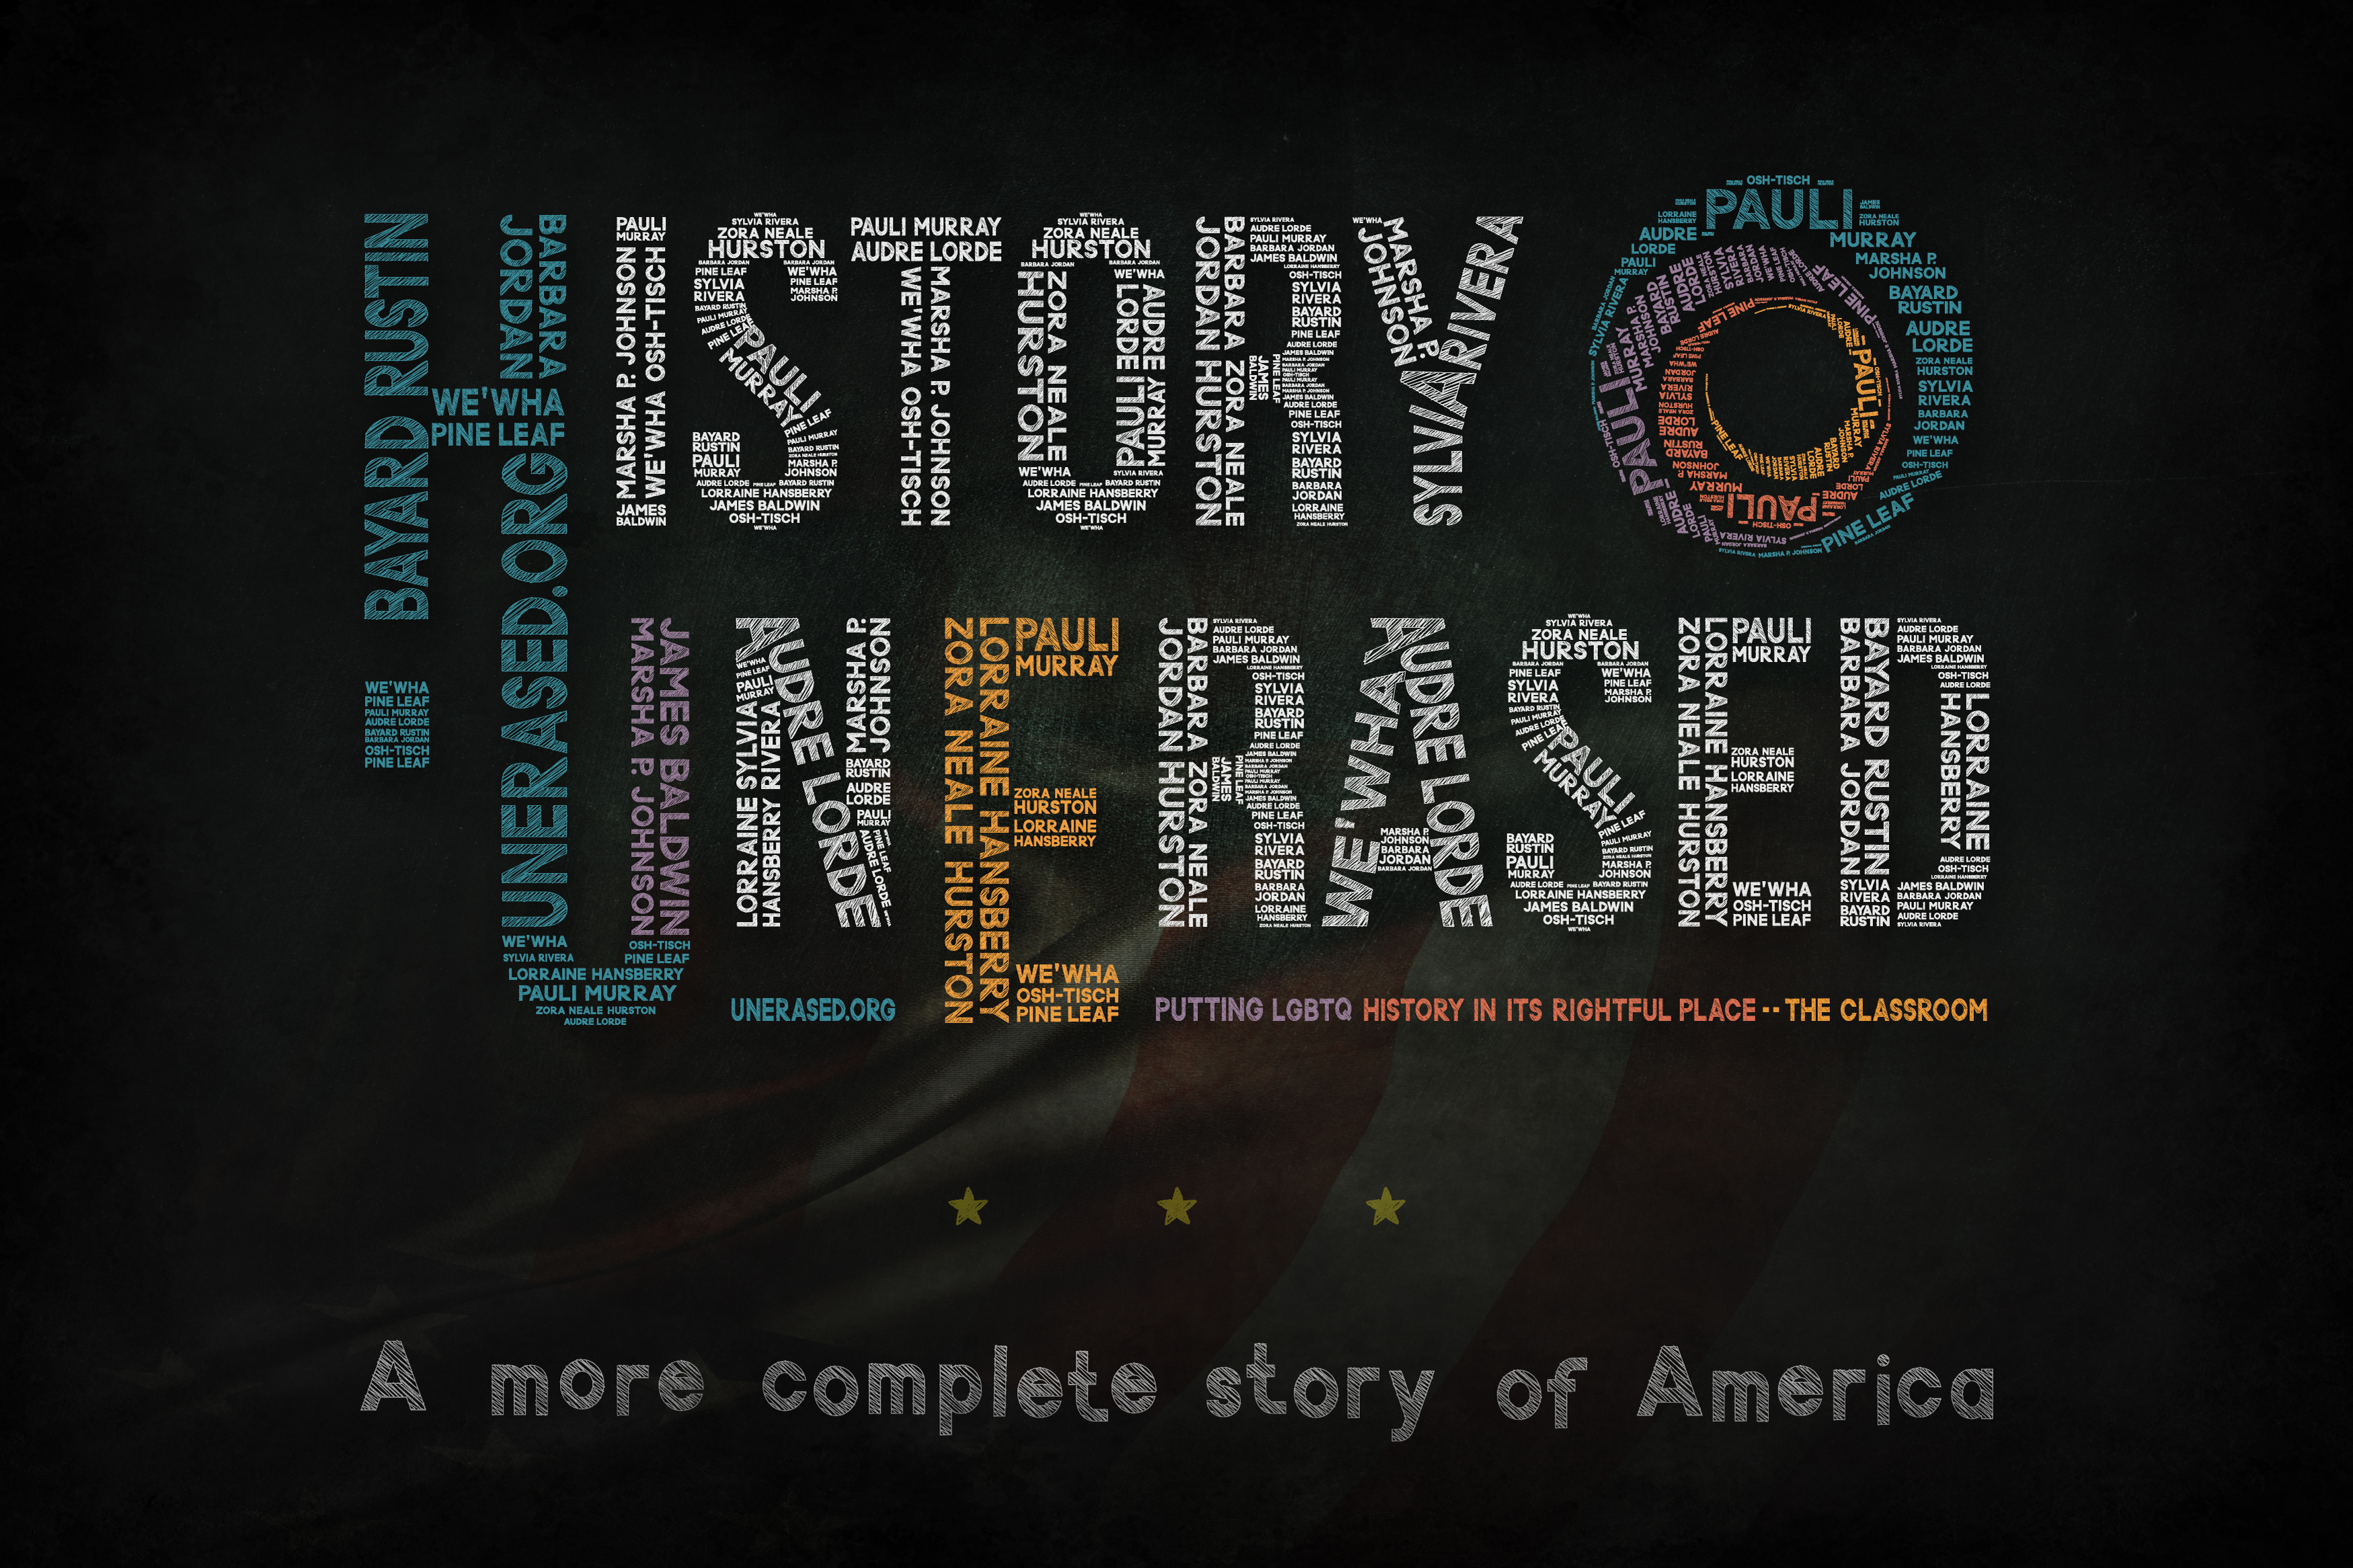 LGBTQ Black, Indigenous, People of Color names within History UnErased's logo